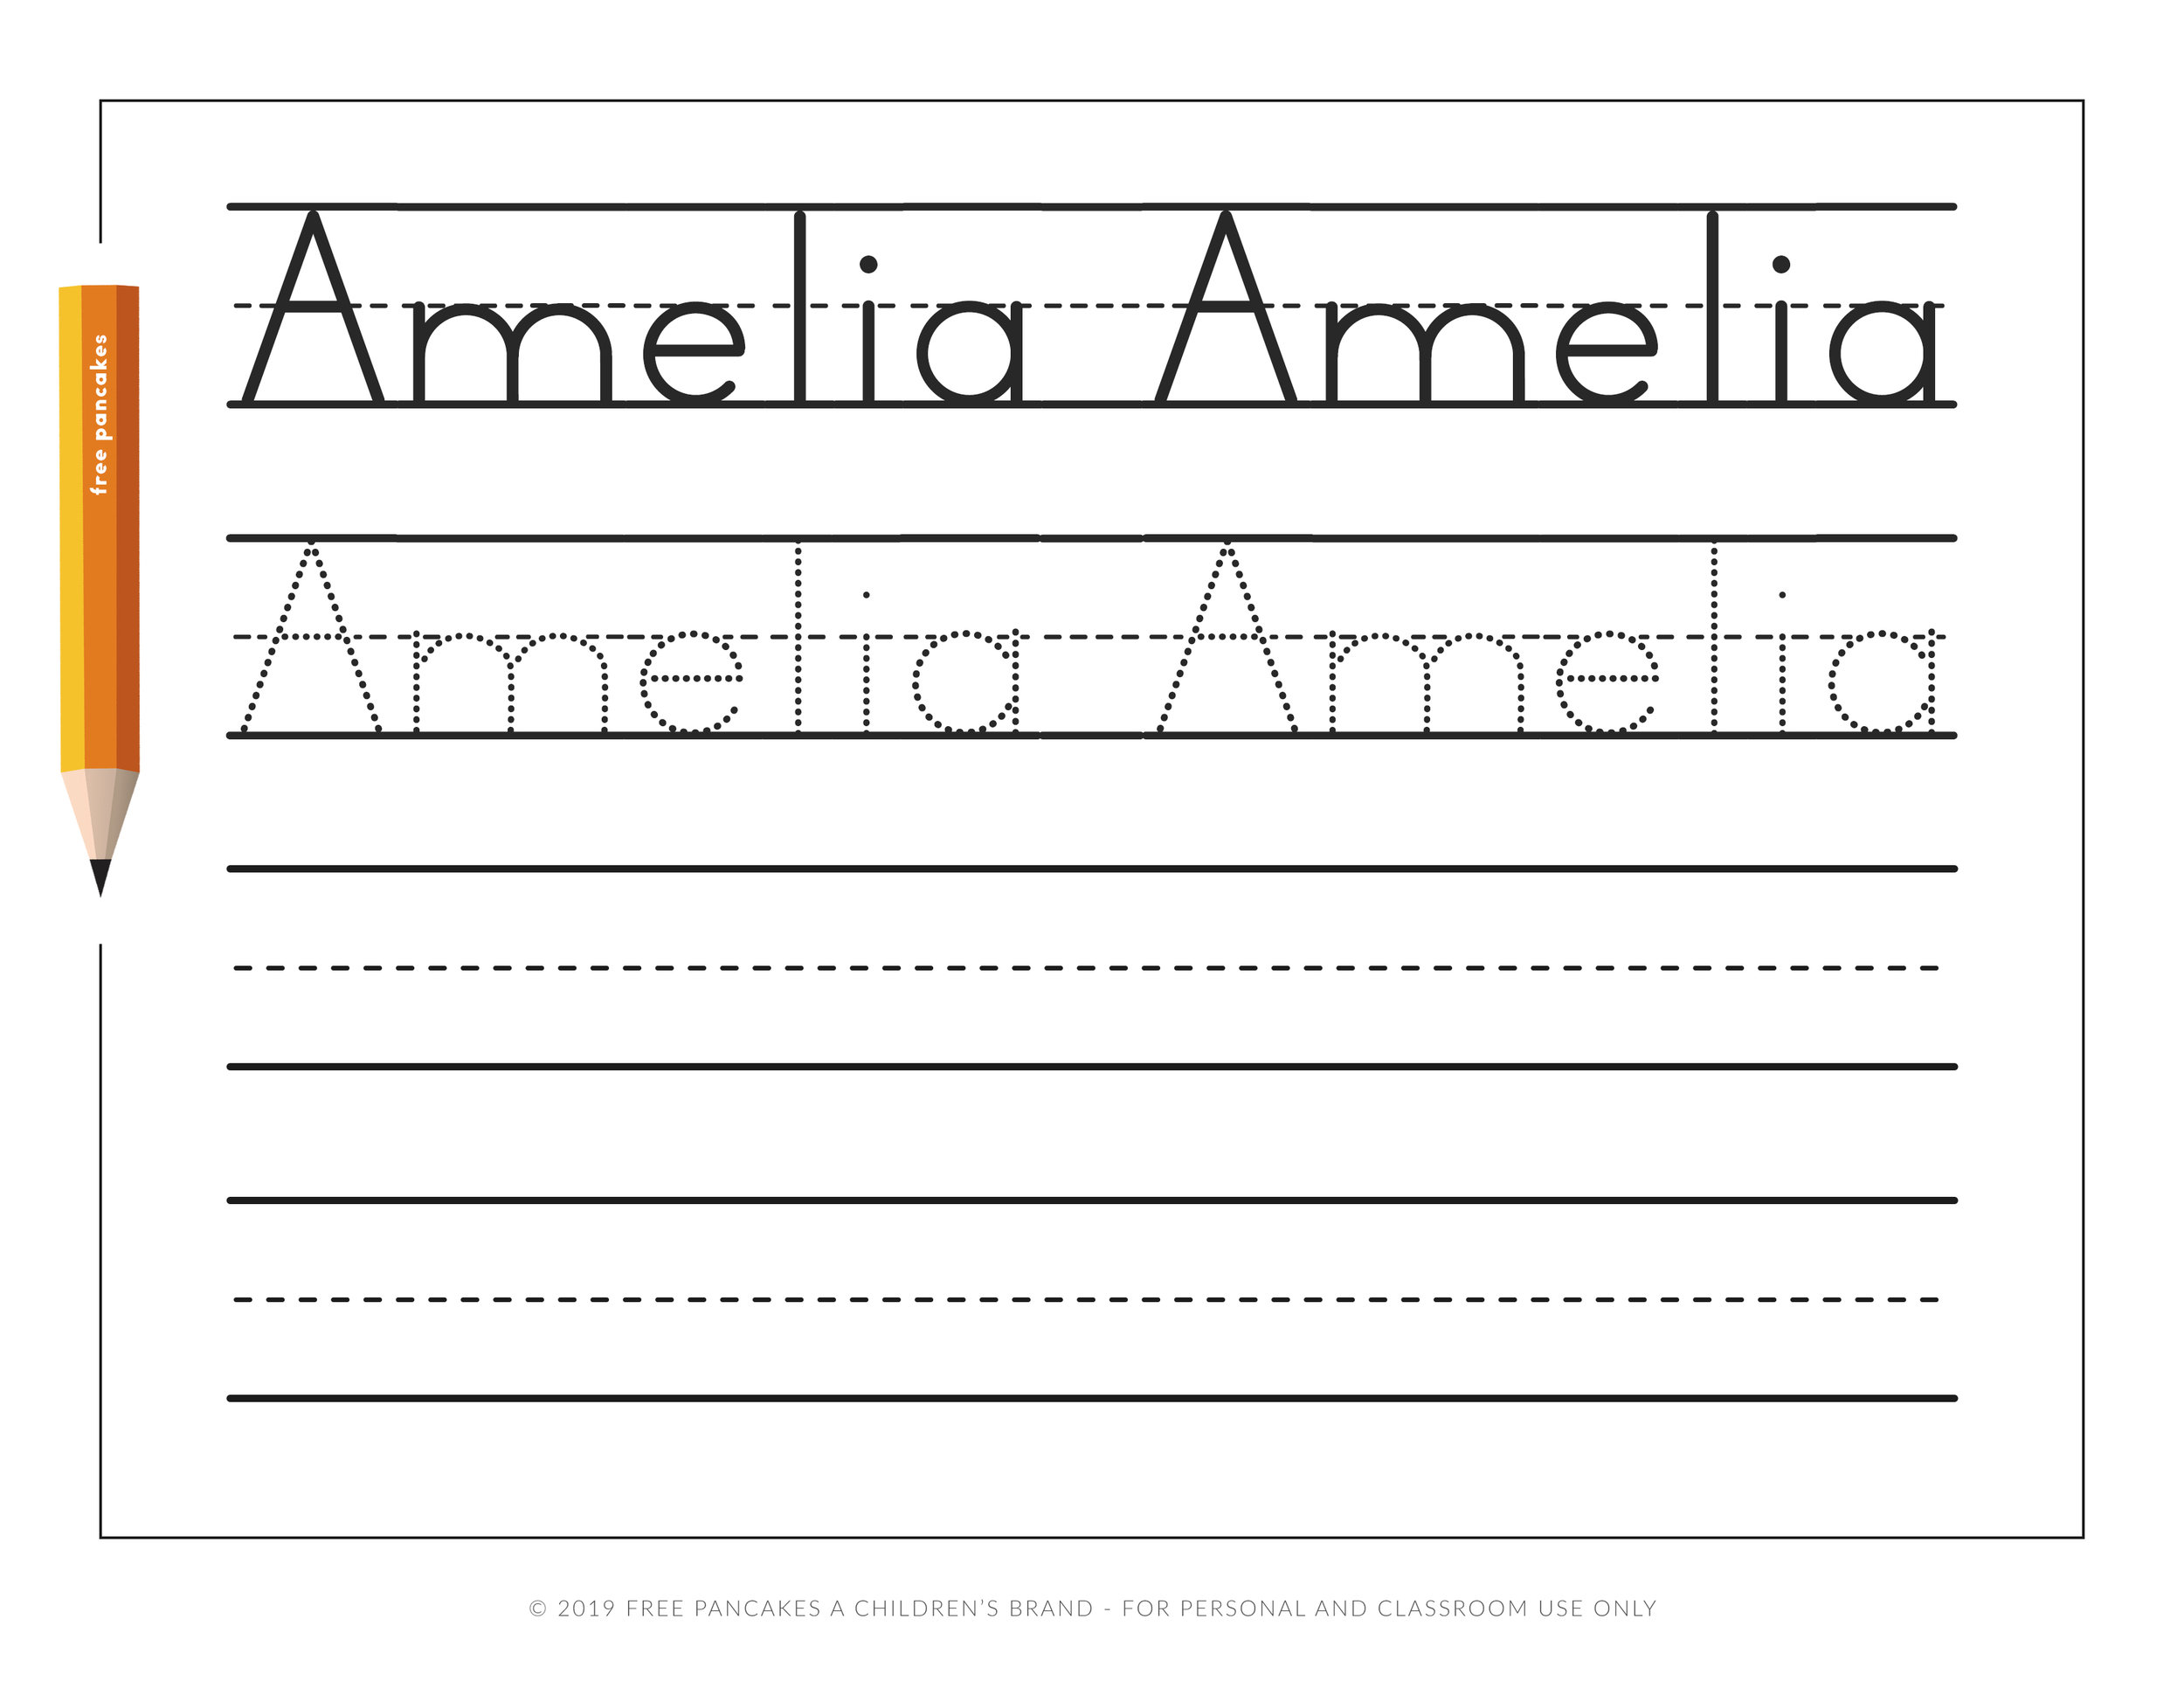 - Personalized Name Tracing Worksheets — Free Pancakes A Children's